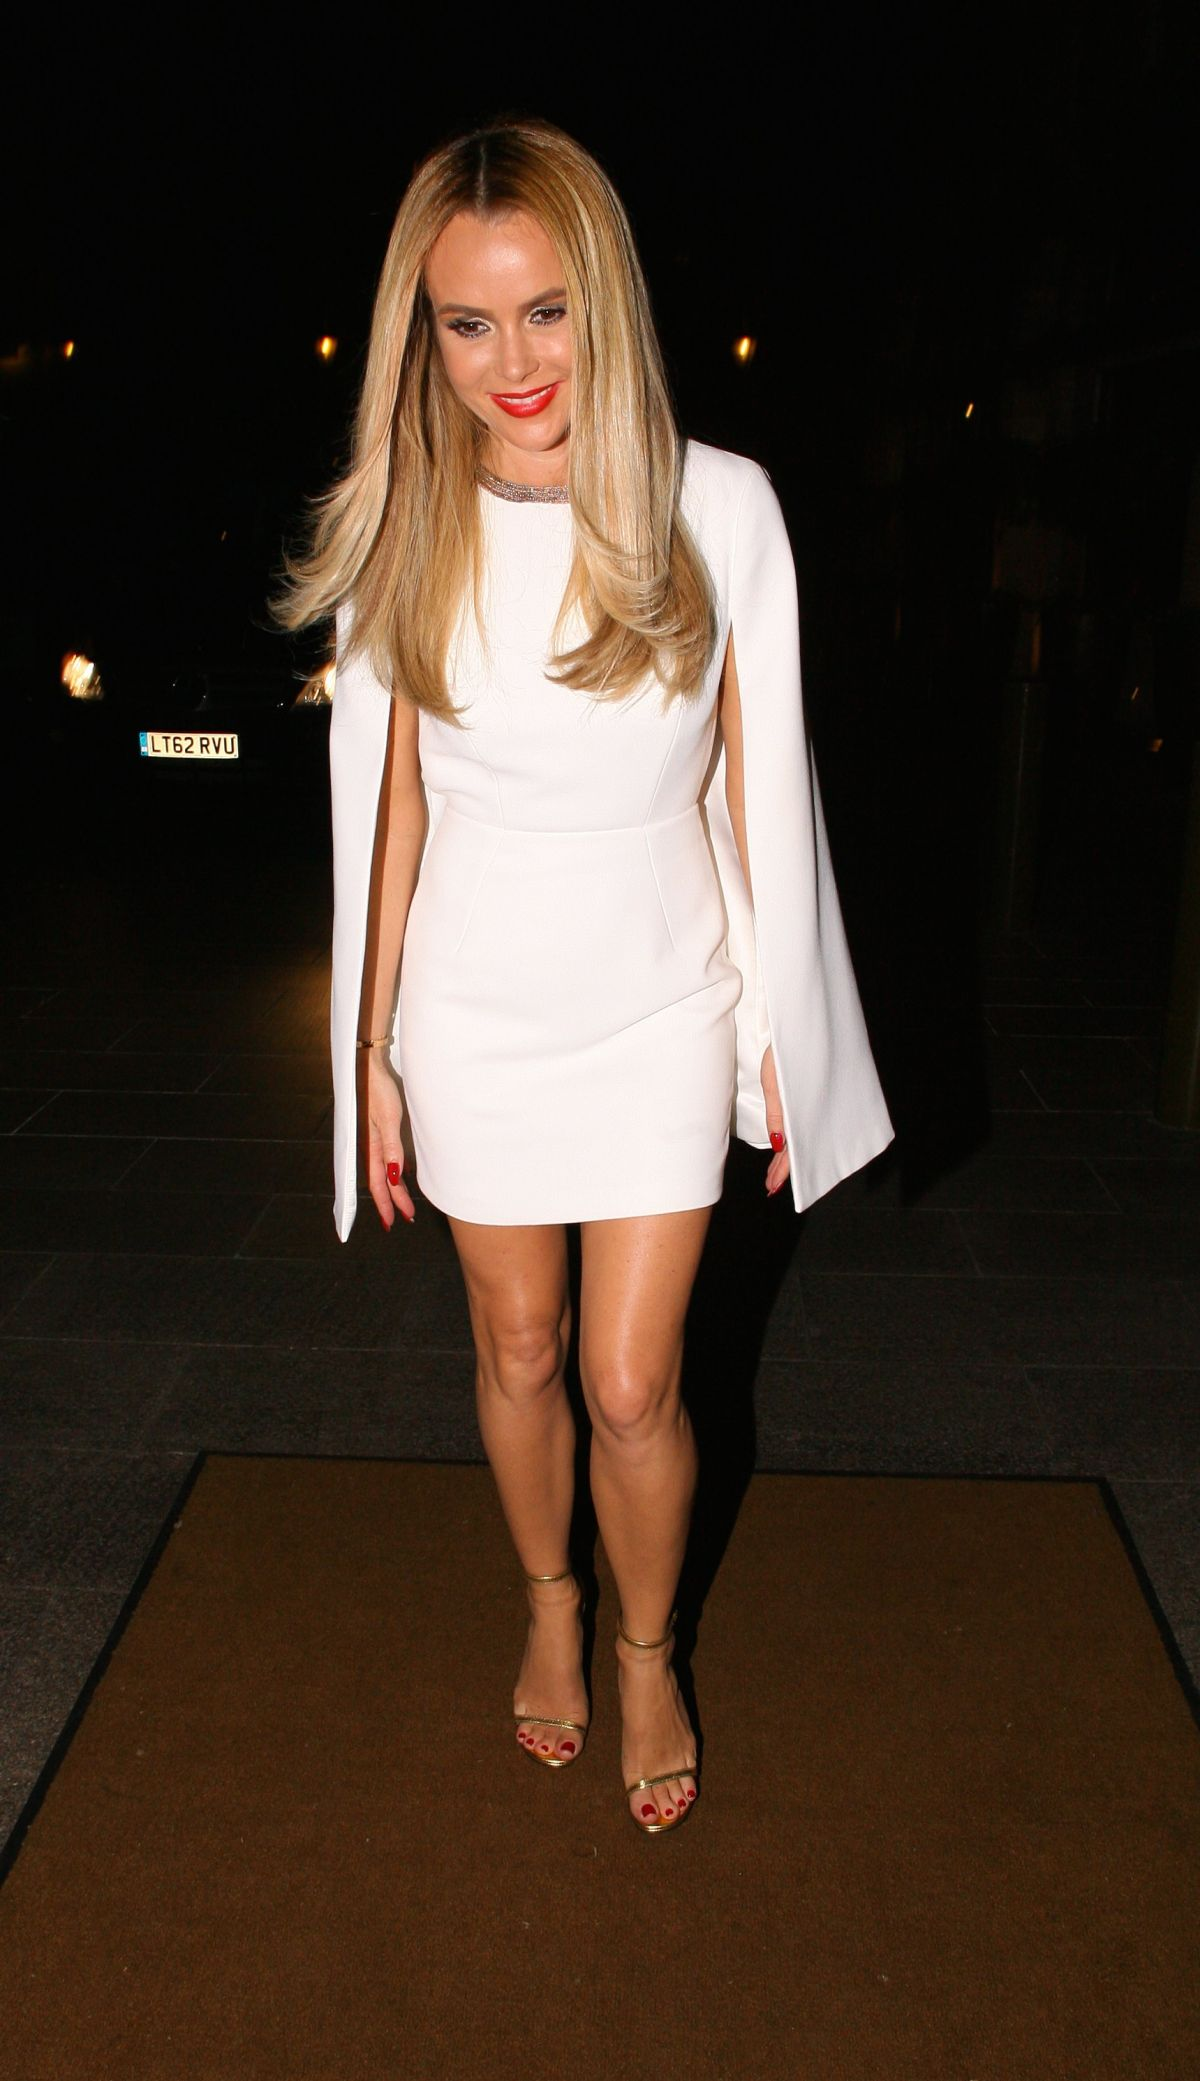 AMANDA HOLDEN Arrives at Britain' Got Talent After Party in London 05/31/2015